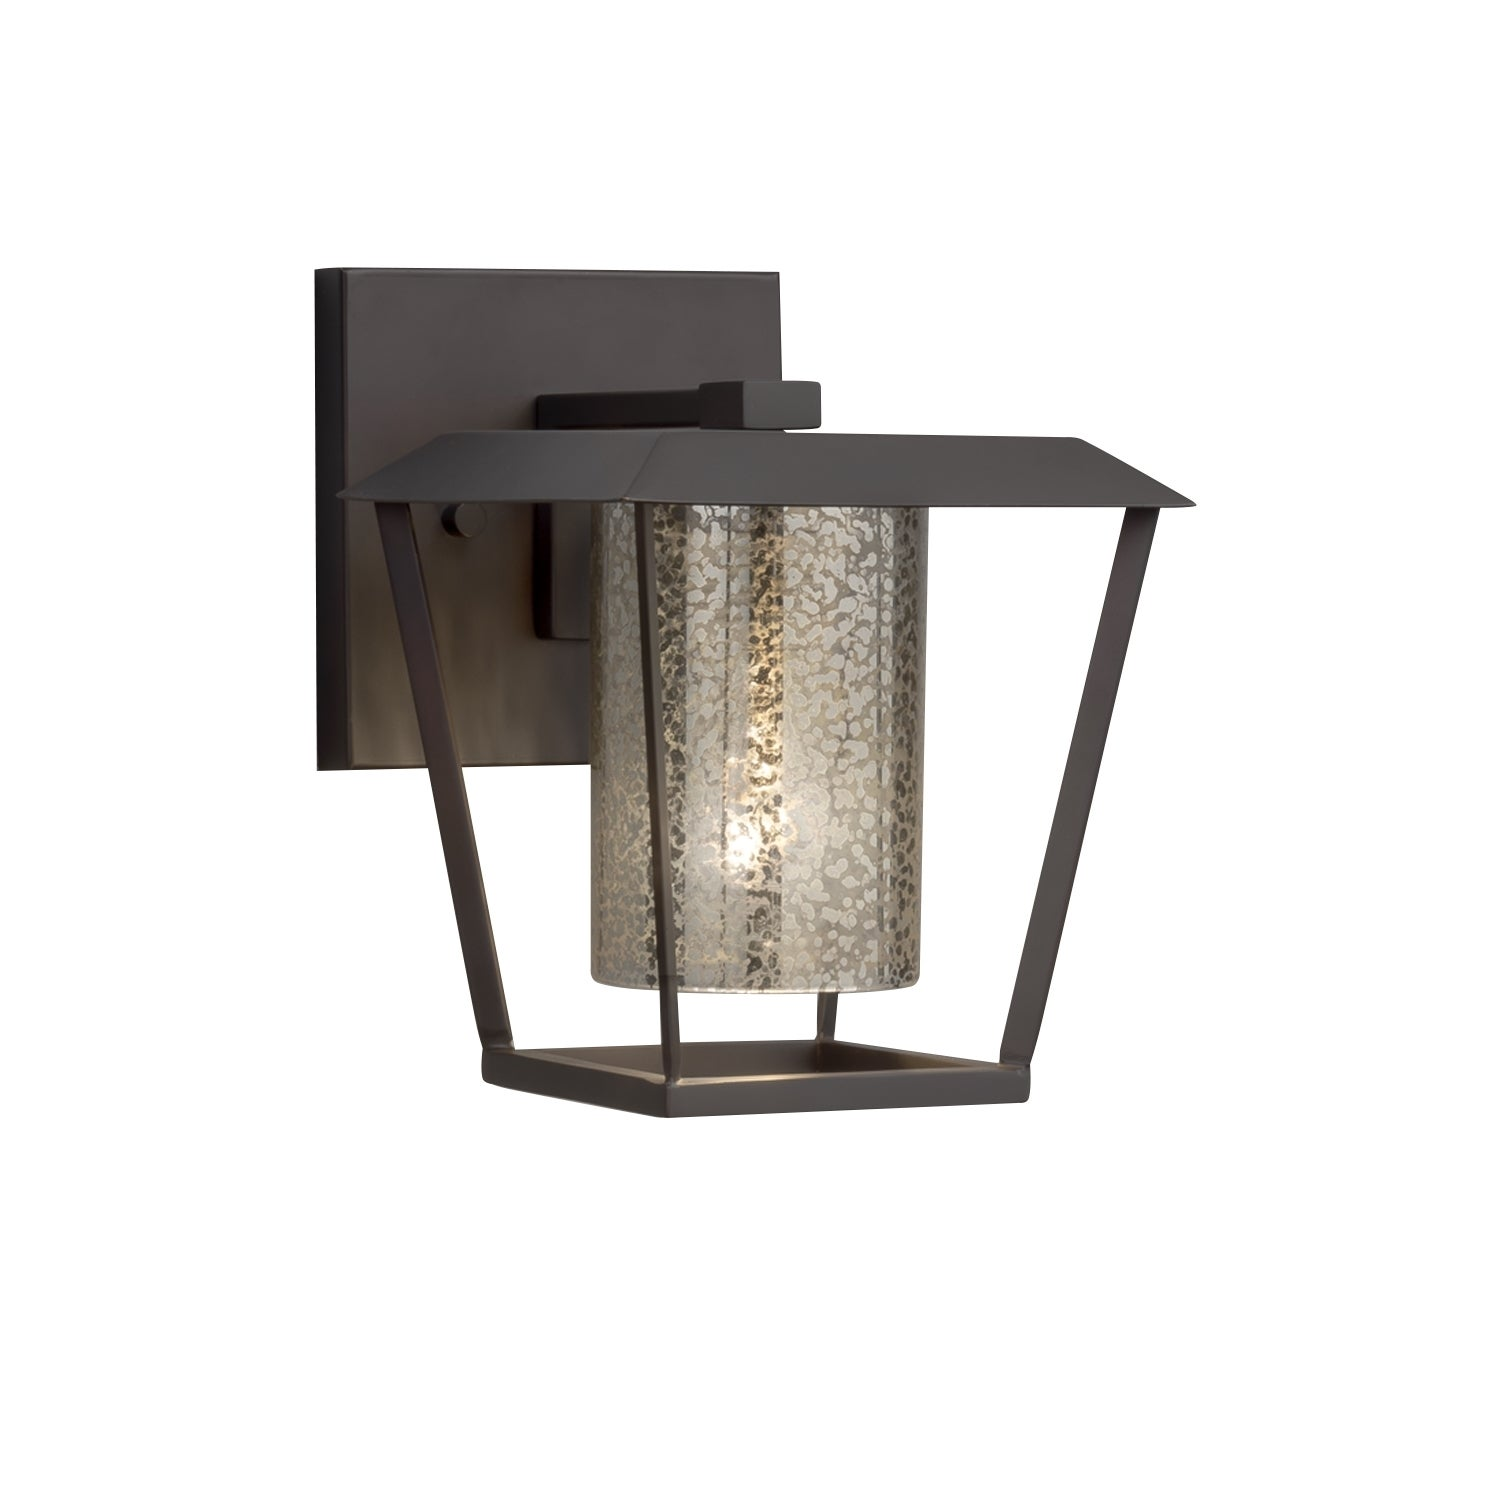 Patina Small 1-Light Outdoor Wall Sconce Brushed Nickel Finish Fusion Cylinder with Flat Rim Artisan Glass Shade in Mercury